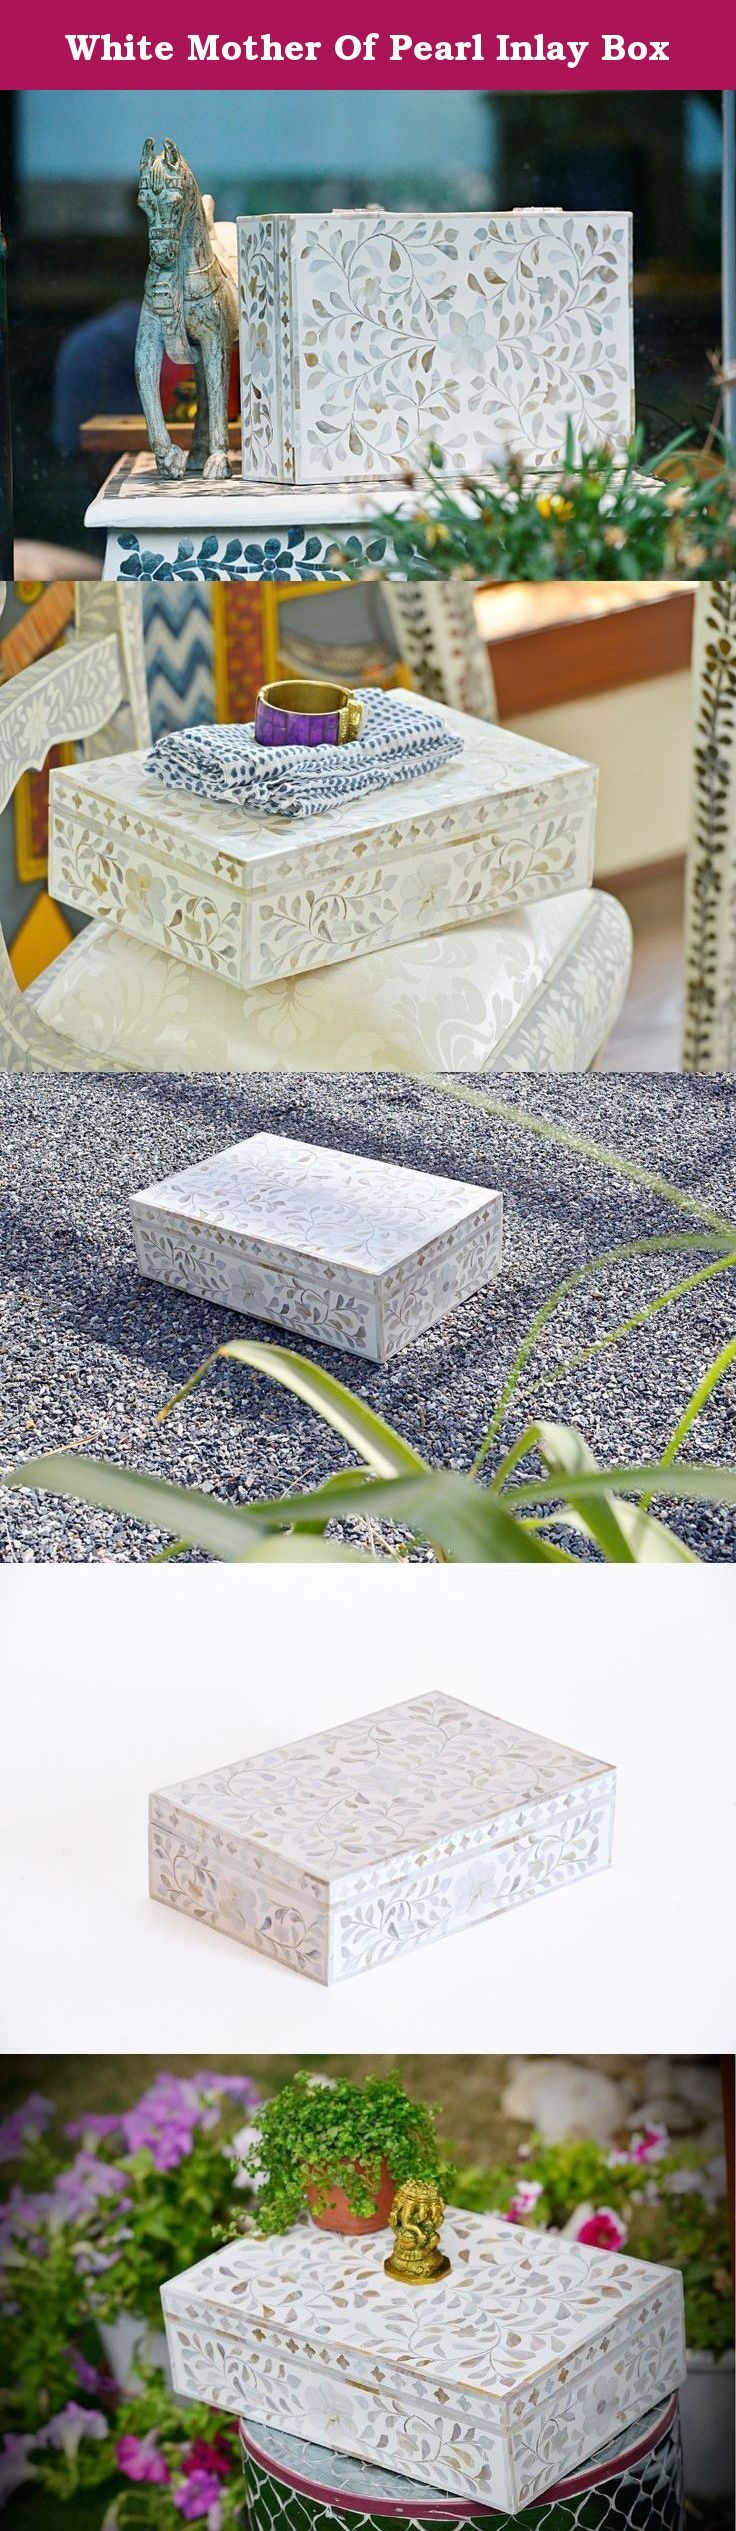 White Mother Of Pearl Inlay Box. Our white mop in floral leafy pattern is embellished from mop and intricately inlayed into wooden box to create beautiful detailing. The mother of pearl gives a beautiful soothing contrast against white colored resin. They are perfect piece to bring home or gift for your loved ones. The magical pearly texture would create that heavenly aura into your space. Size: 35cm L x 23cm W x 10cm H ABOUT THE ART OF INLAY The art of inlay is specific to Udaipur. Here...